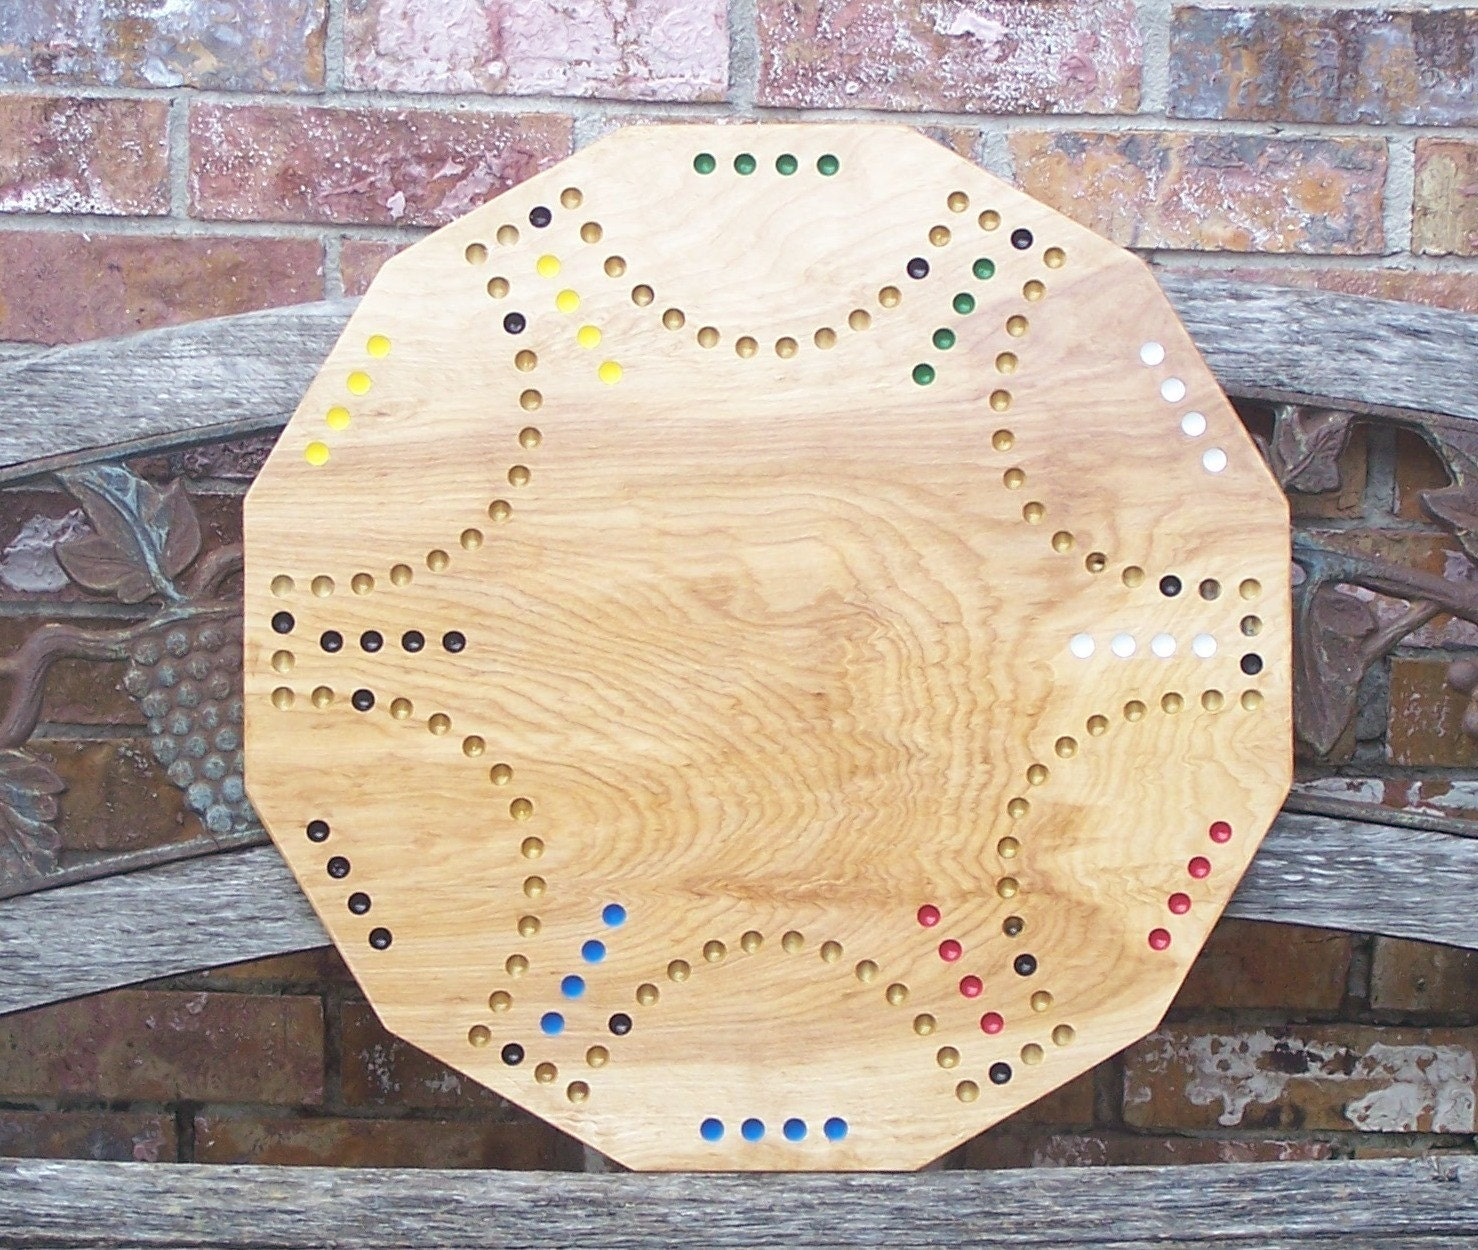 Gallery For Gt Aggravation Board Game Template Template Made For 6